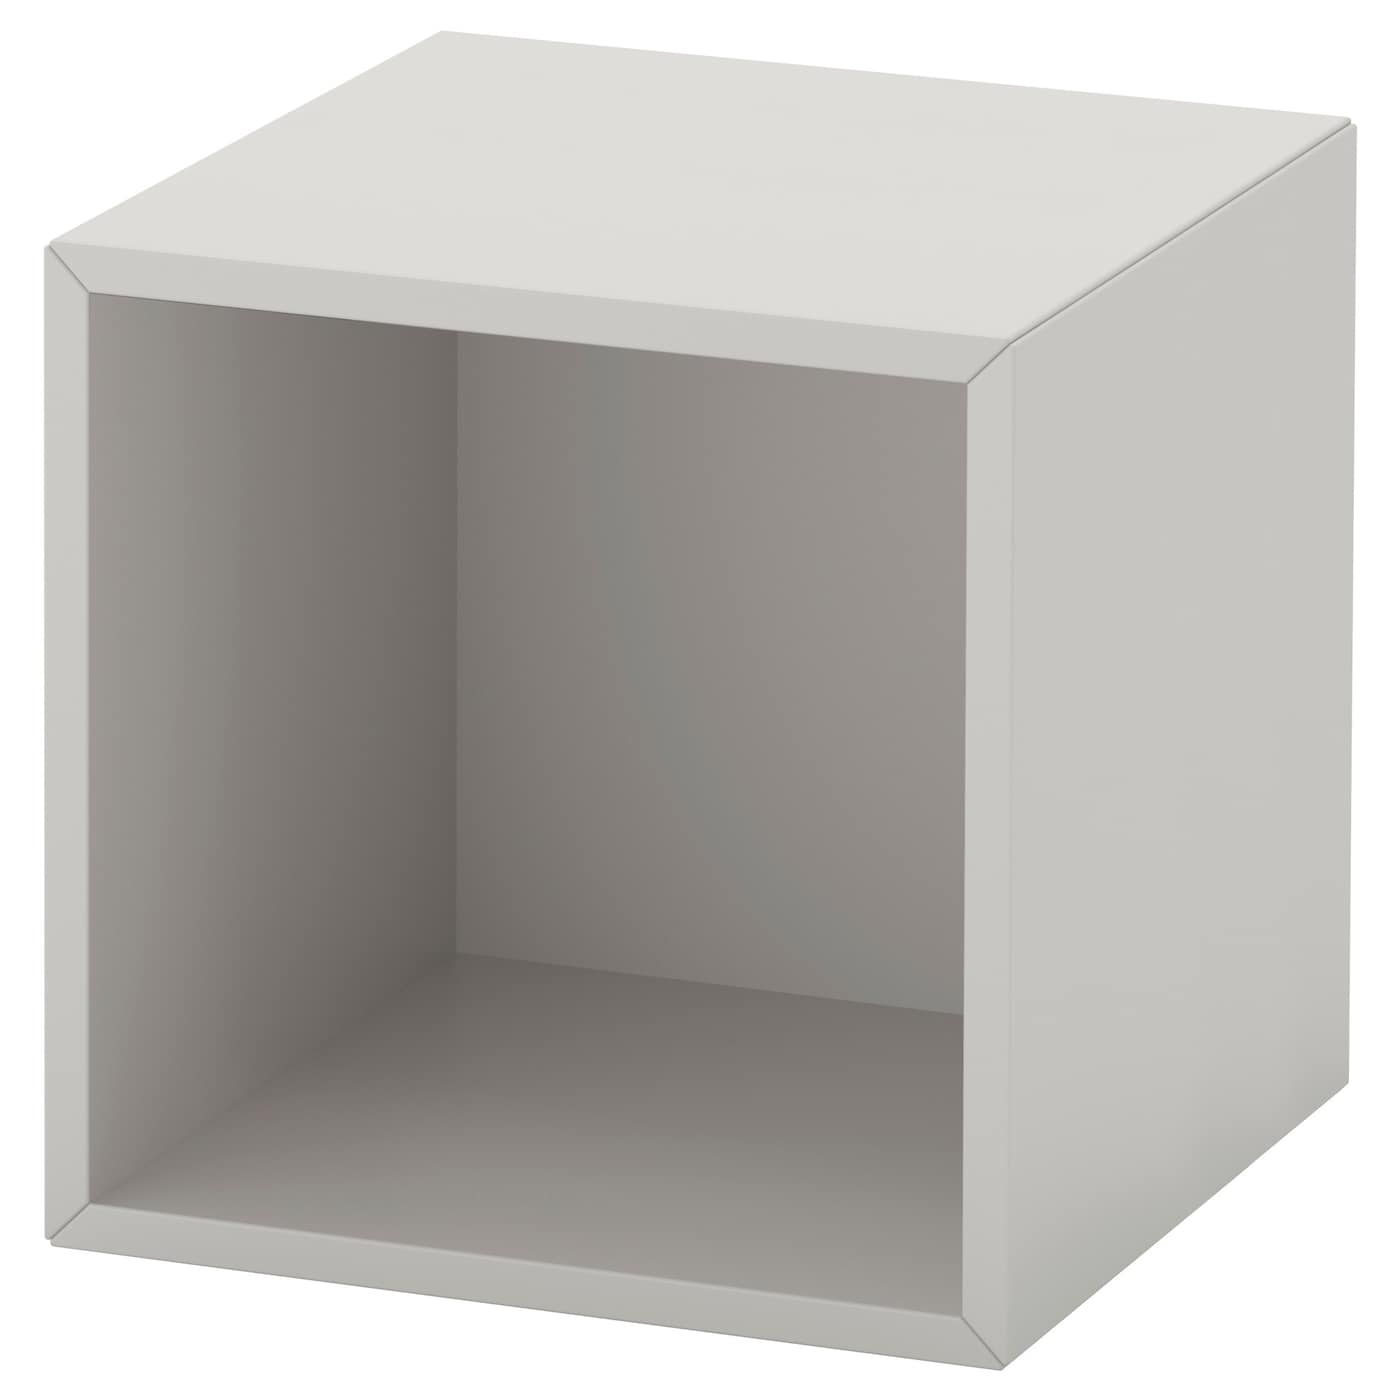 Eket cabinet light grey 35x35x35 cm ikea - Etagere metallique modulable ...